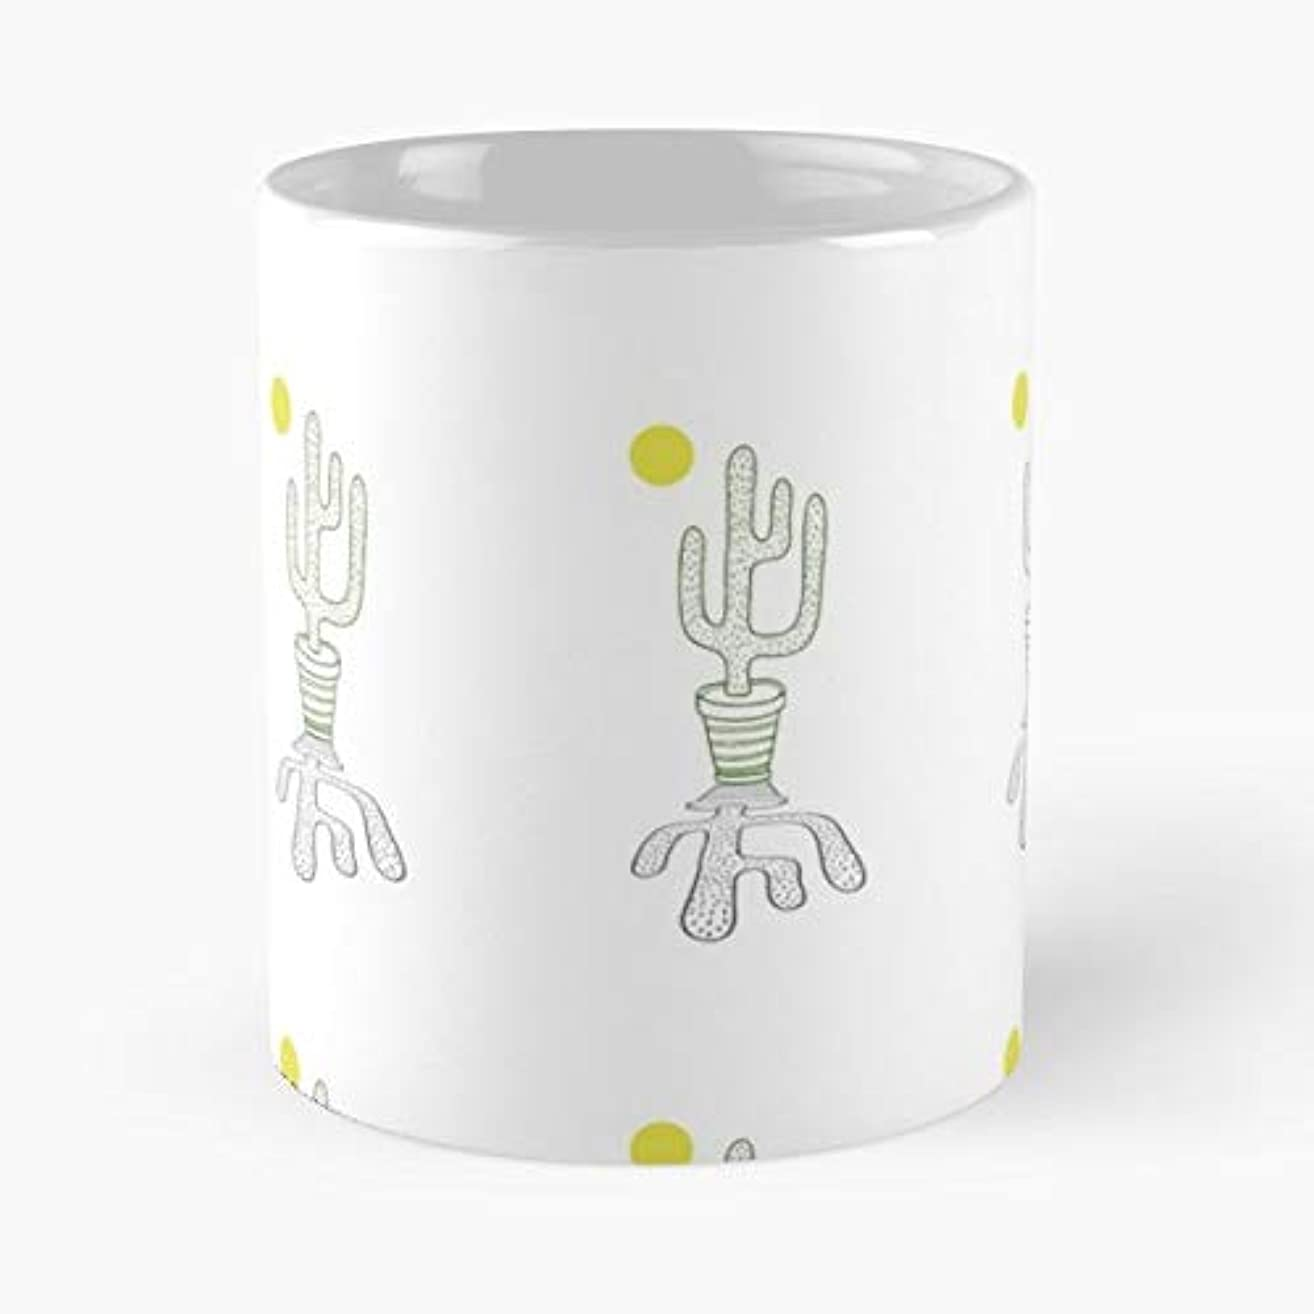 Cactus Californi Los Angeles - 11 Oz Coffee Mugs Ceramic The Best Gift For Holidays, Item Use Daily